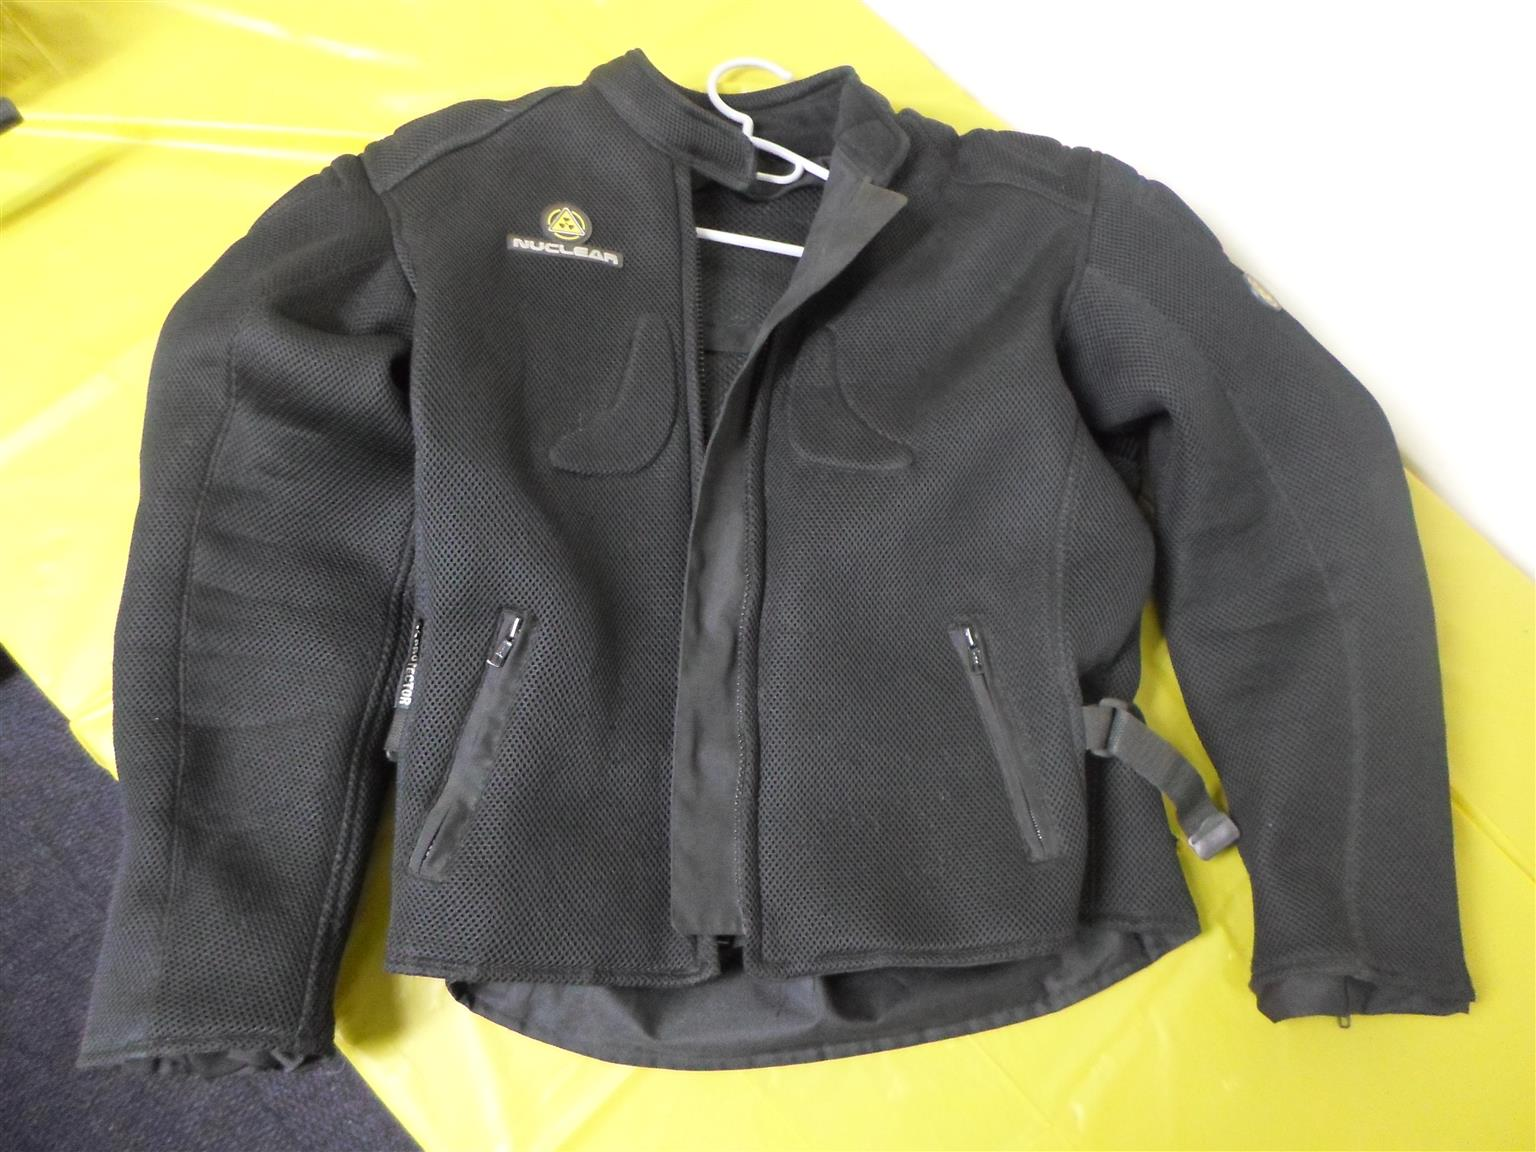 Nuclear Motorcycle Jacket